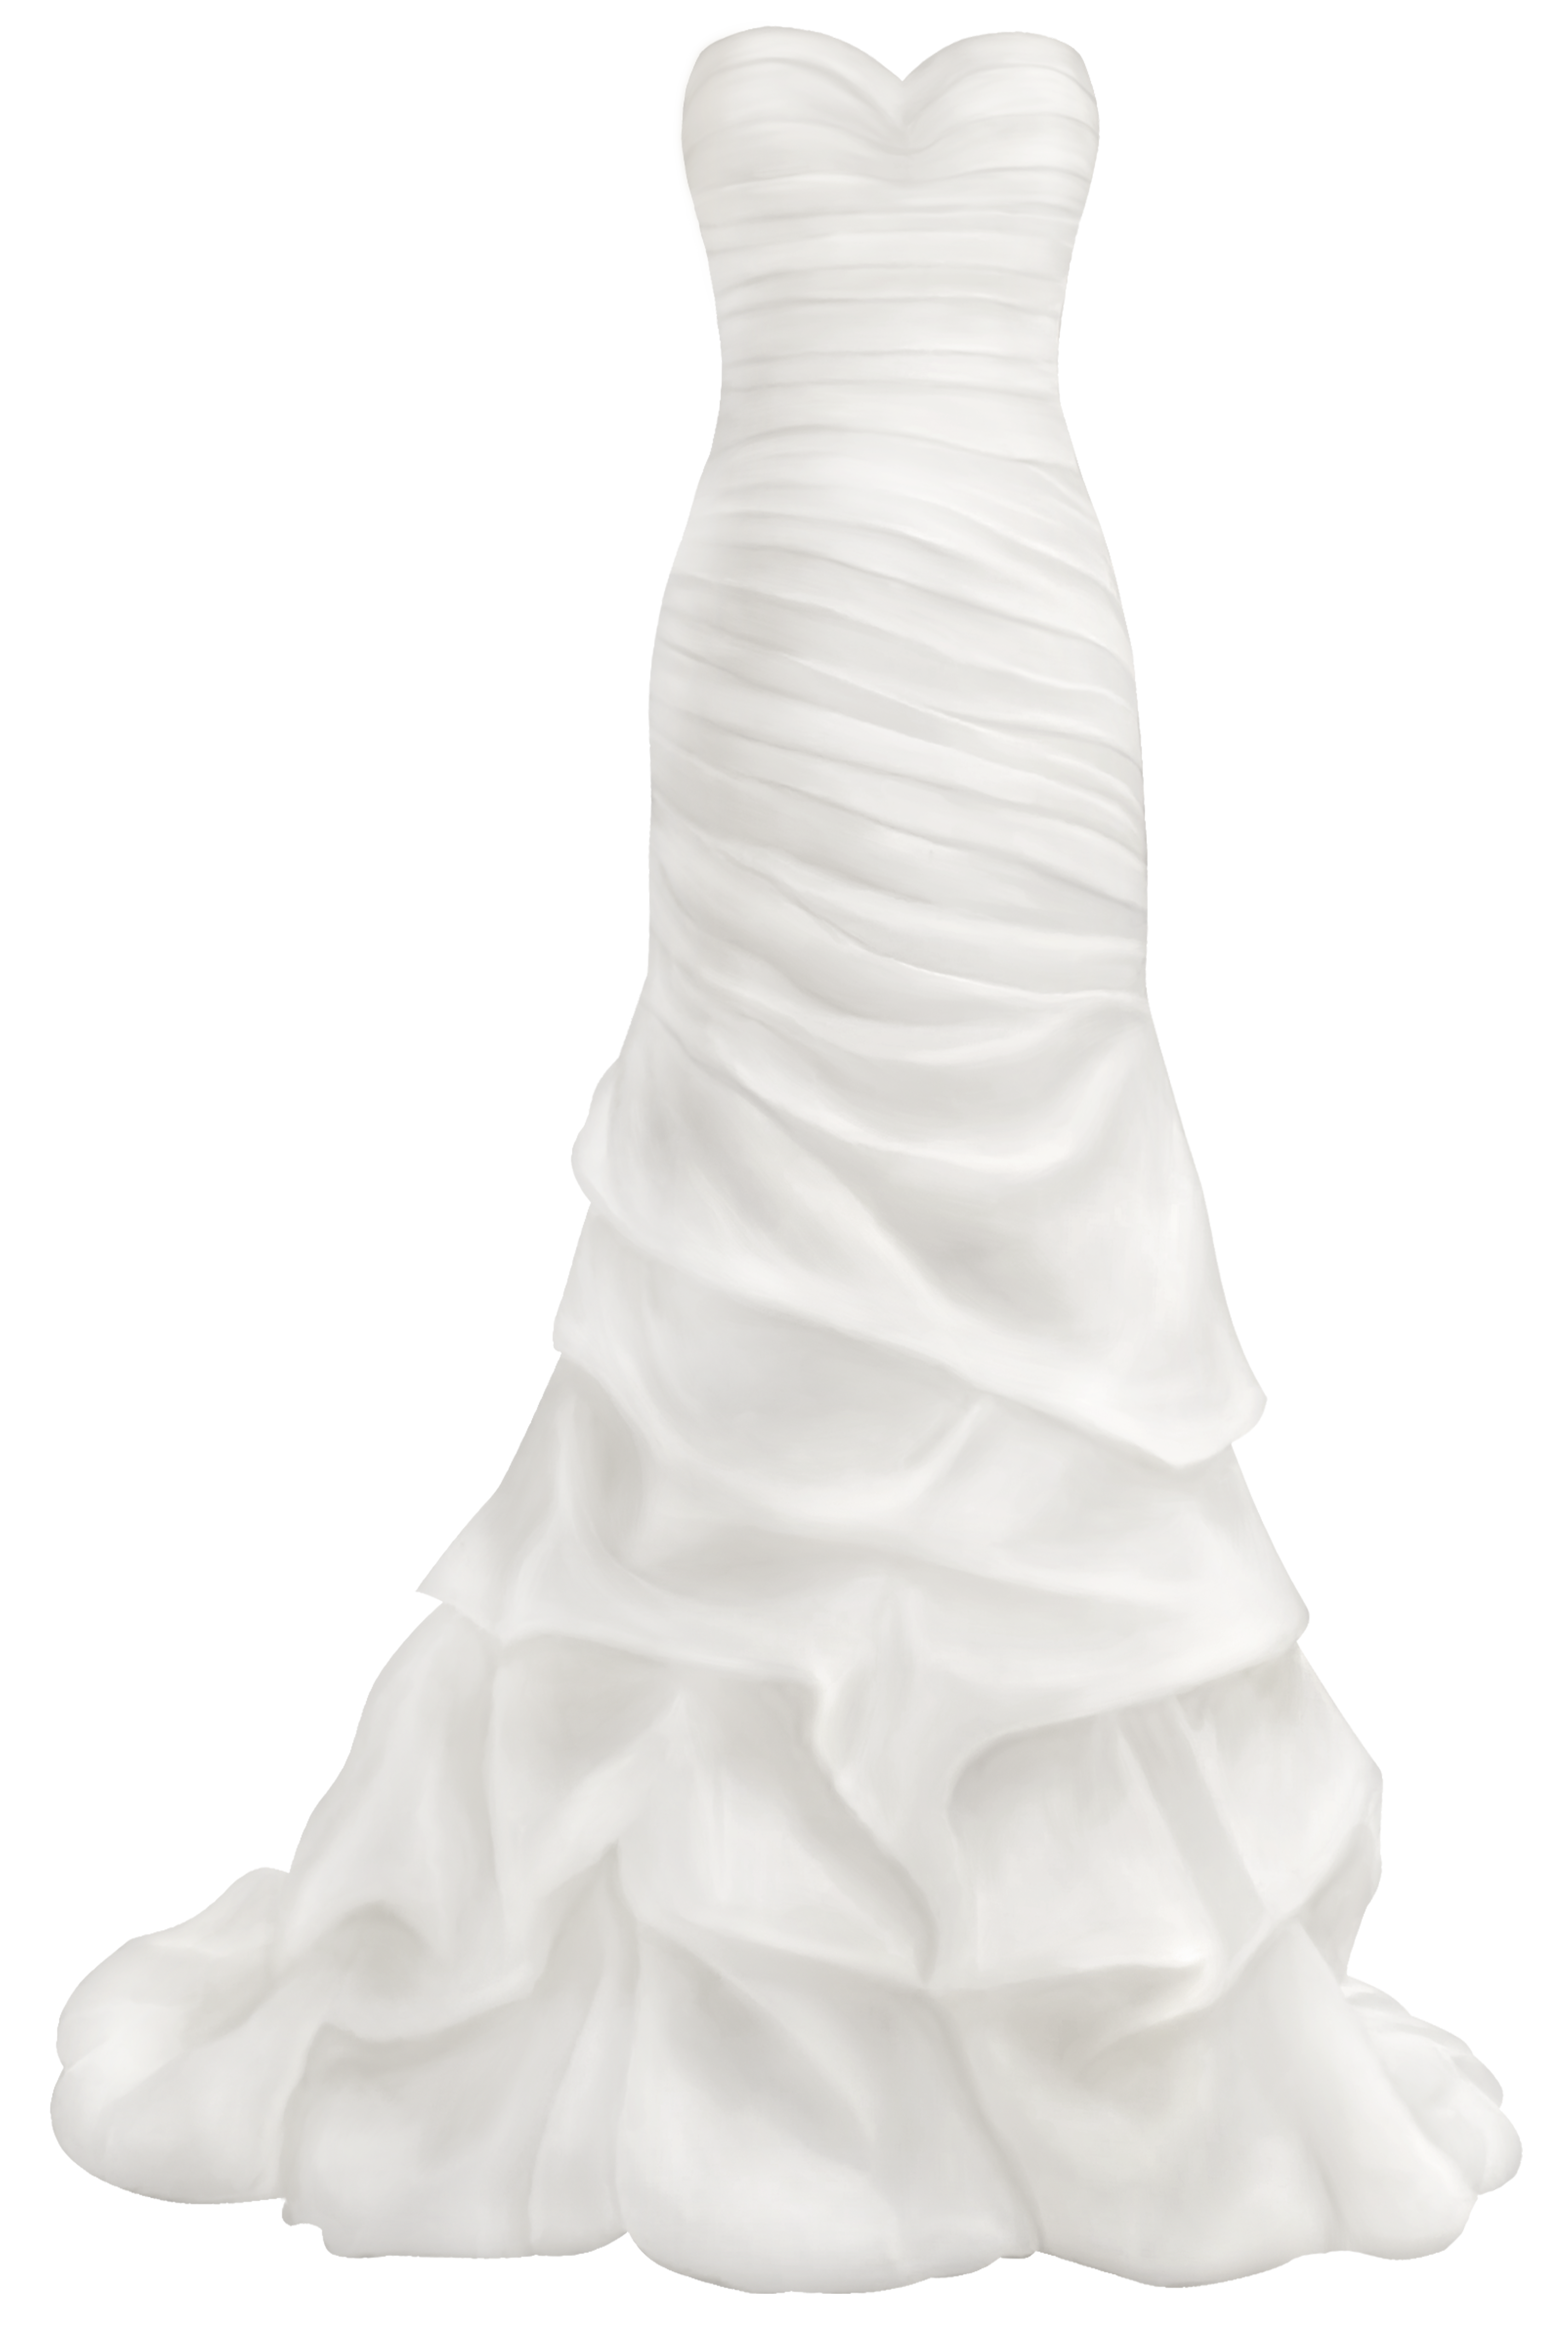 Wedding gown images clipart clip art black and white stock Beautiful Wedding Dress PNG Clip Art - Best WEB Clipart clip art black and white stock